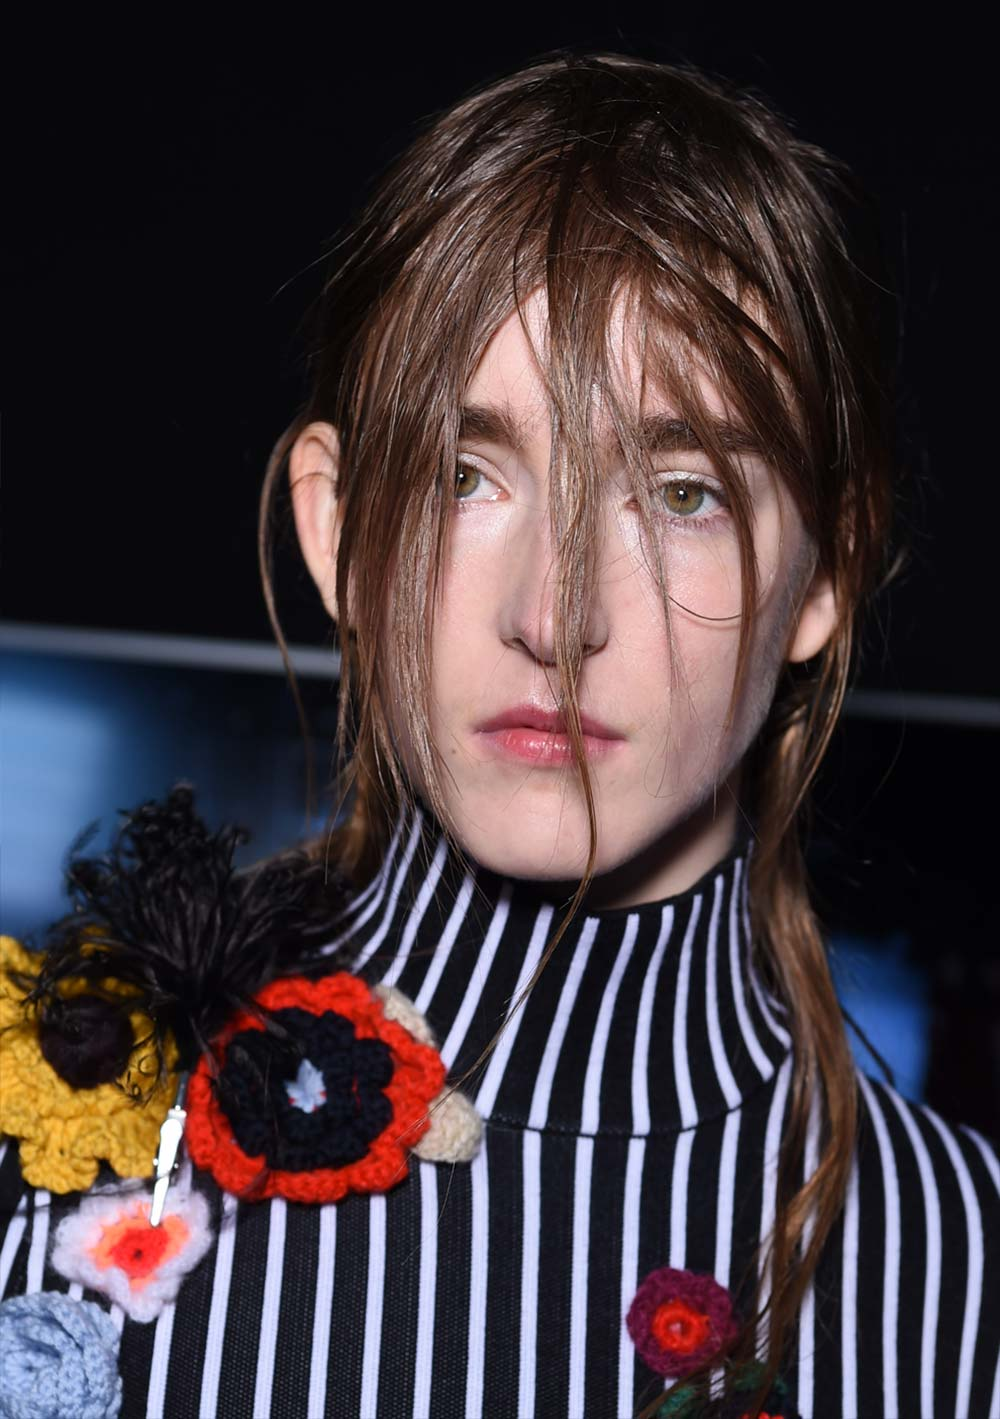 Fresh faced beauty at Christopher Kane A/W 2016